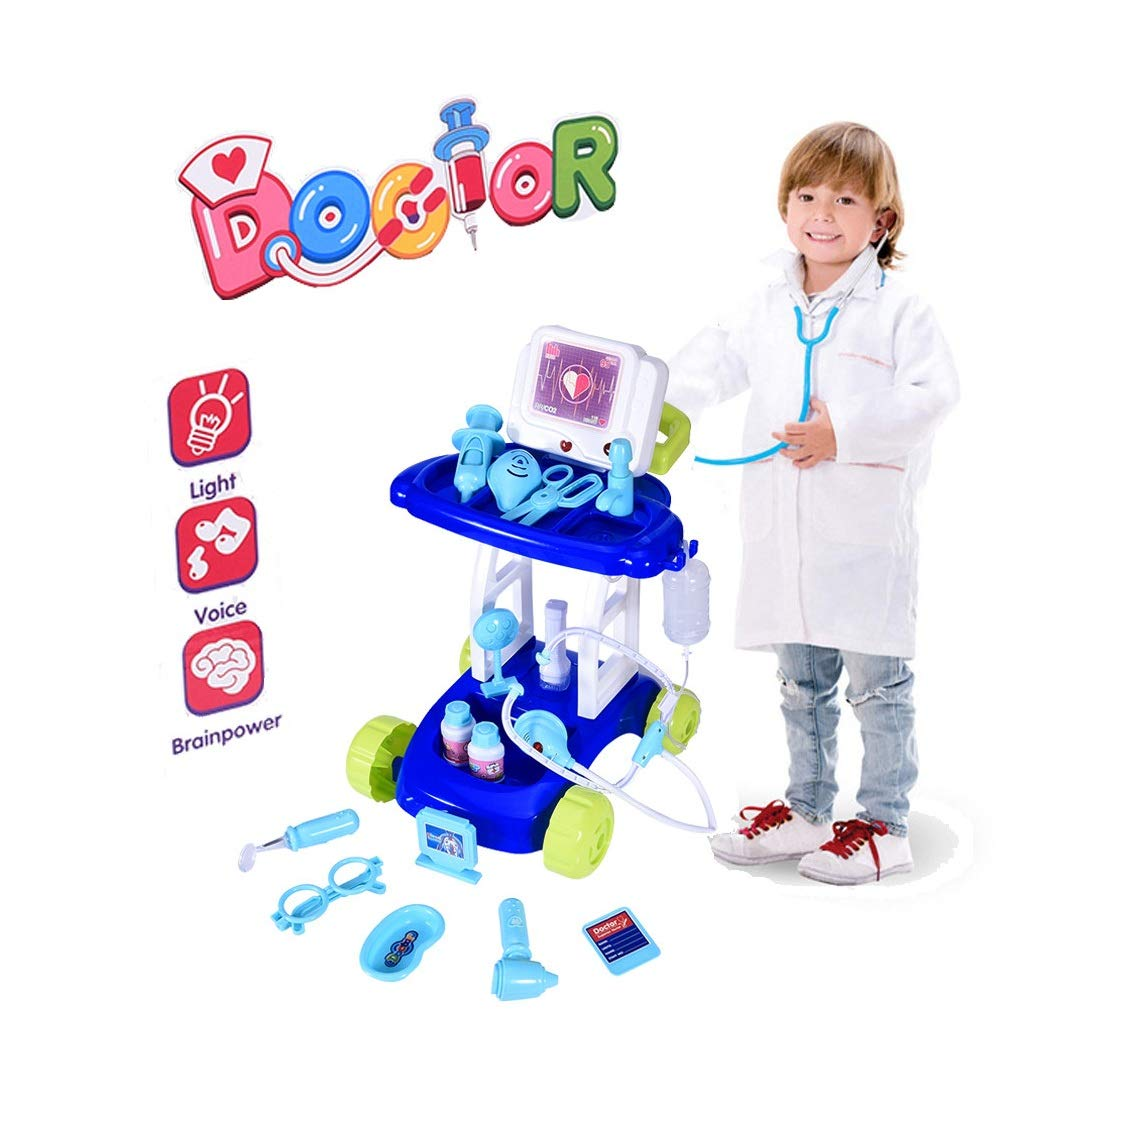 Kaniem Kids Doctor Toy Set,Doctor Pretend Play Kit with Electric Simulation ECG Medical and Stethoscope, Organizer Role Playing Game Preschool Educational Toys (C, Blue) by Kaniem